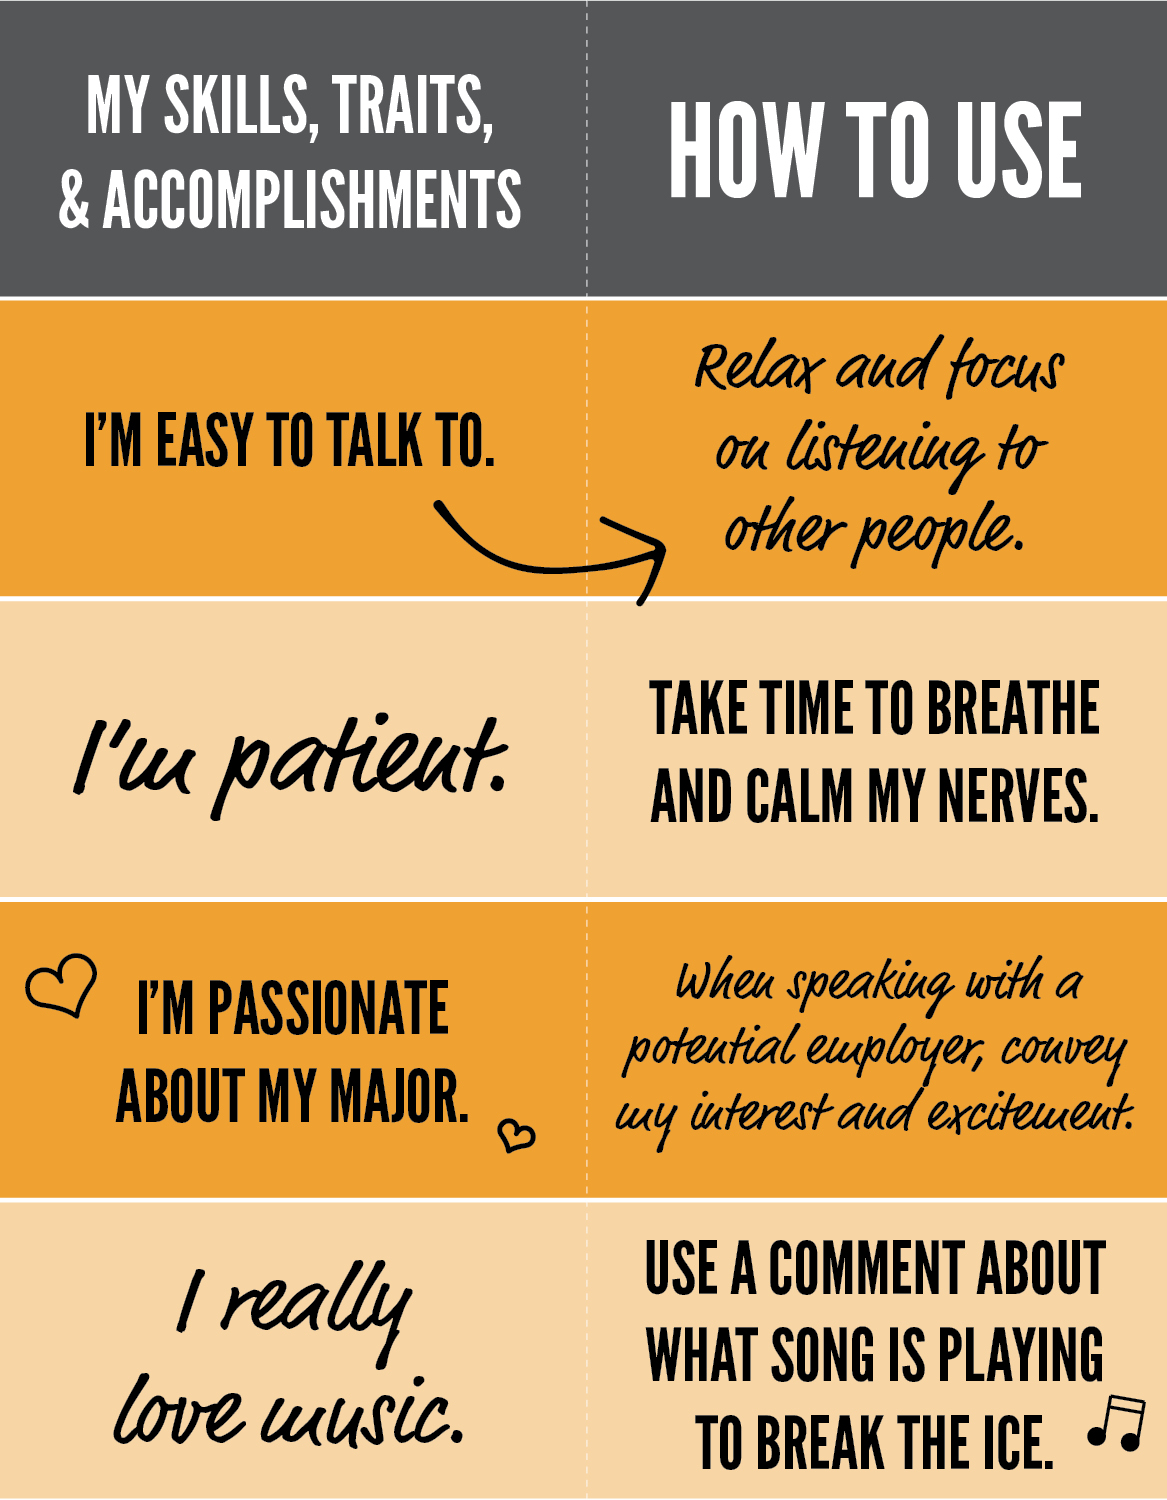 Two column chart: My skills, traits, & accomplishments vs. How to use. Row 1: I'm easy to talk to aligns with How to use: relax and focus on listening to other people Row 2: I'm patient. aligns with How to use: Take time to breathe and calm my nerves. Row 3: I'm passionate about my major aligns with How to use: When speaking with a potential employer, convey my interest and excitement. Row 4: I really love music aligns with How to use: Use a comment about what say is playing to break the ice.